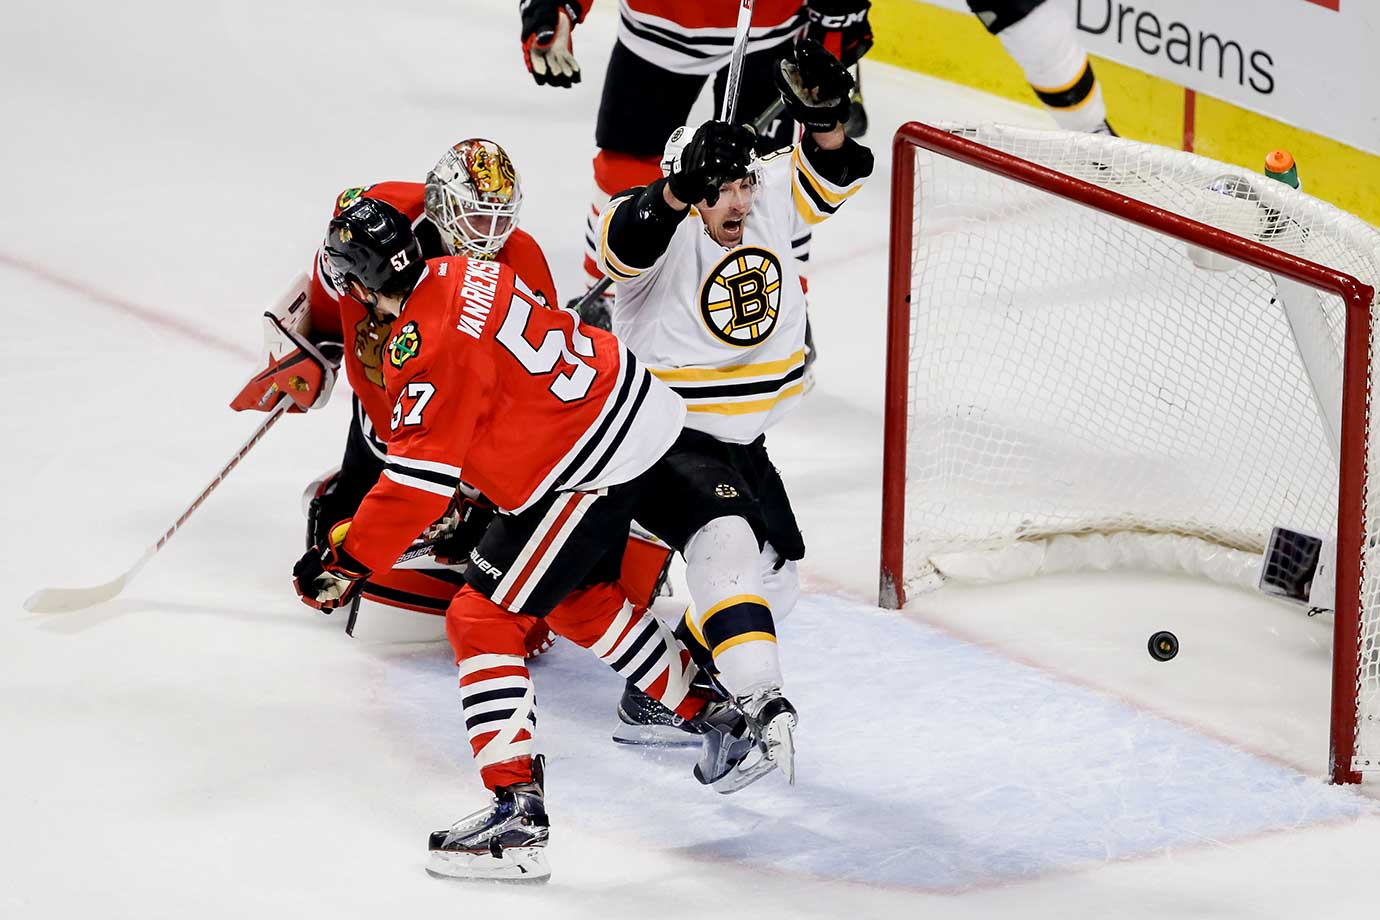 Brad Marchand of the Boston Bruins scores on goalie Scott Darling of the Chicago Blackhawks.